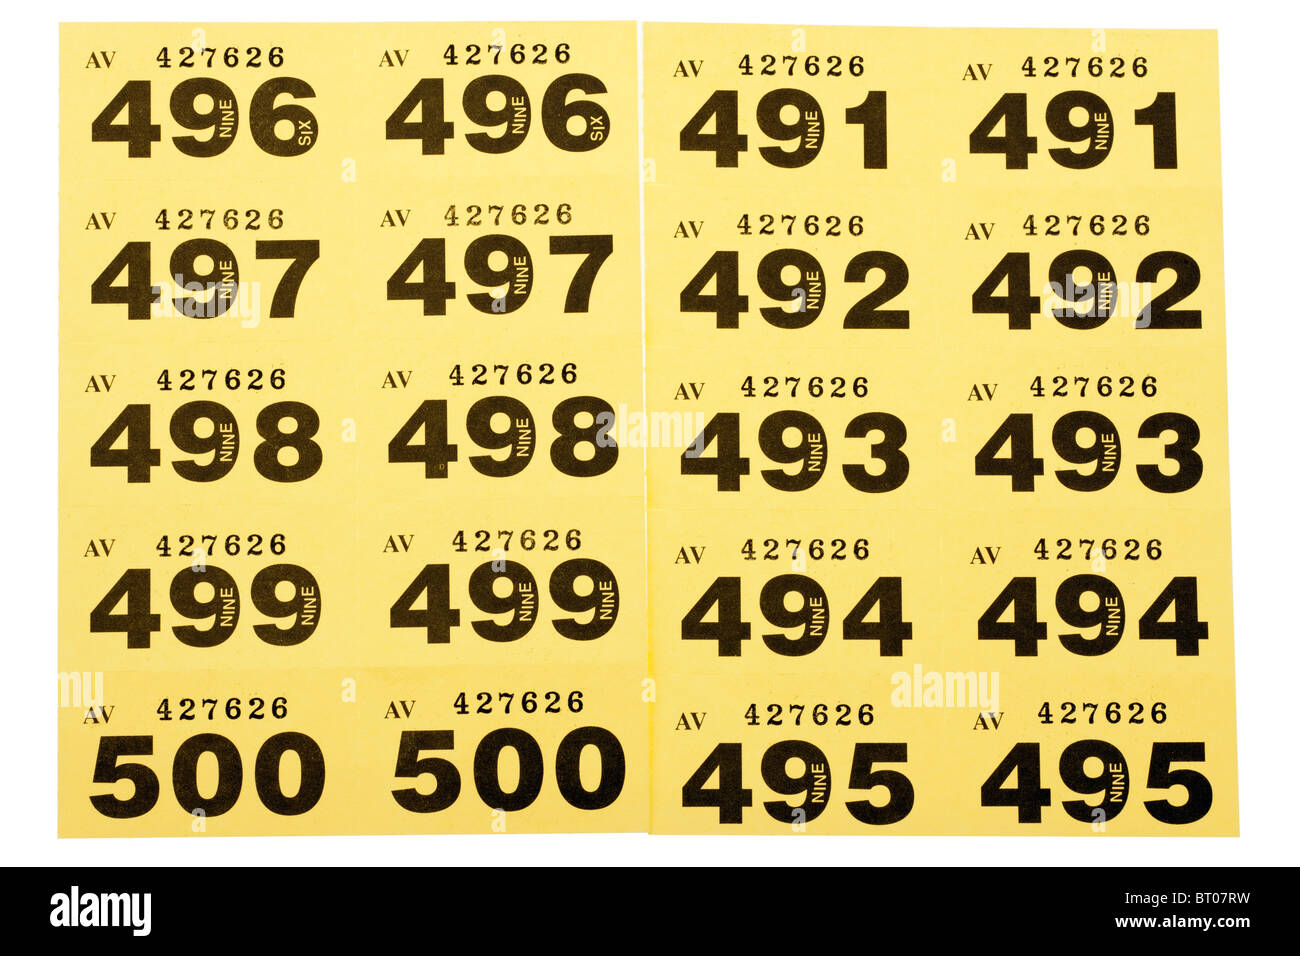 Yellow cloakroom tickets - Stock Image